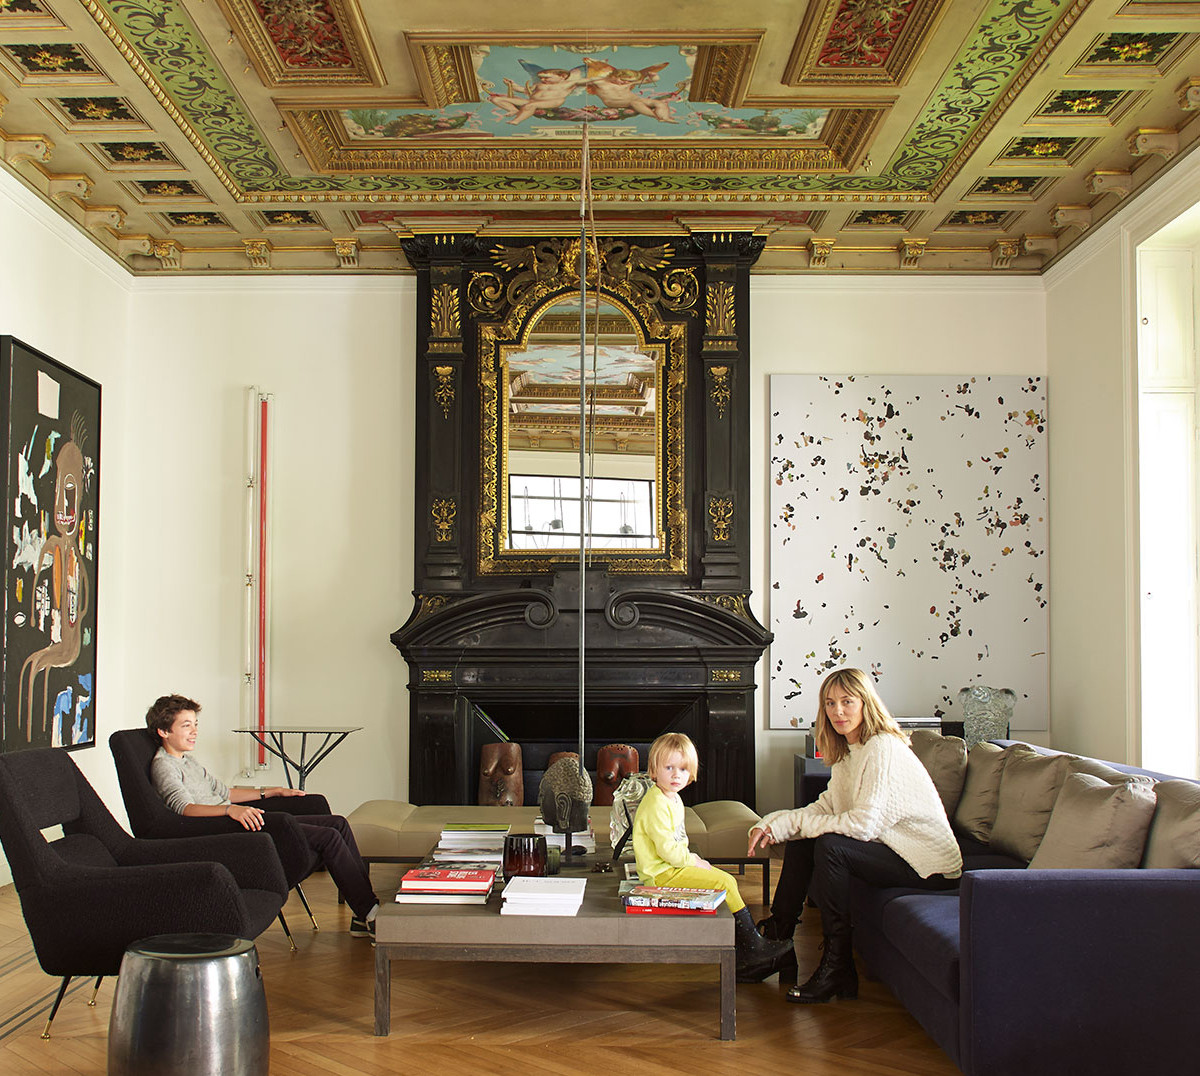 Cécilia Bönström and two of her children, Victor (far left) and Emil-Milo, in their Paris living room, surrounded by works of artists including Jean-Michel Basquiat, Dan Flavin, Adam McEwen, and Katinka Bock.